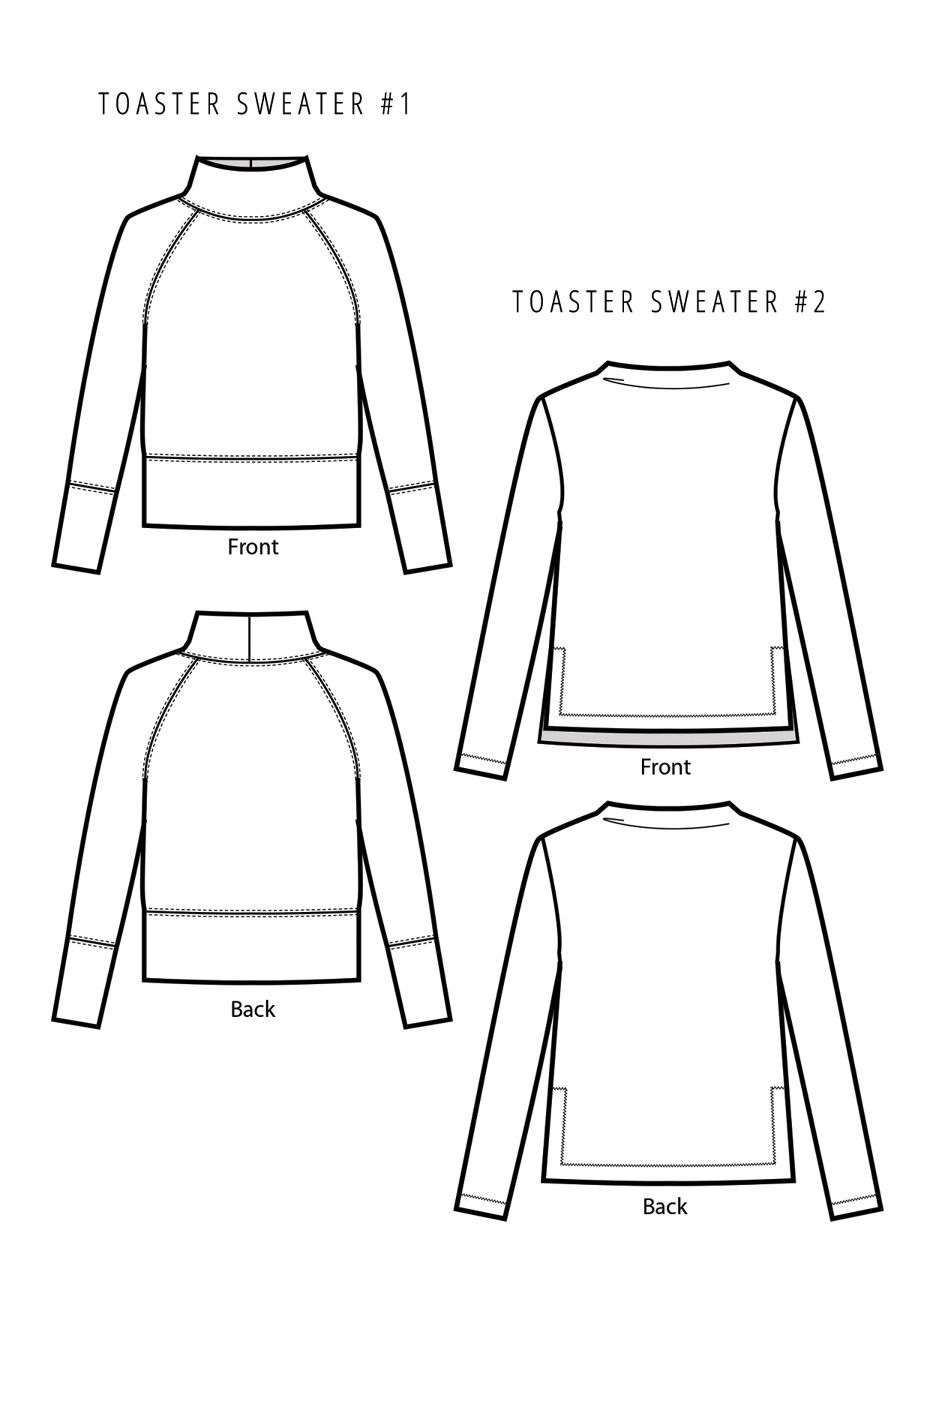 Toaster Sweaters Sewing Pattern by Sew House Seven | Pinterest ...